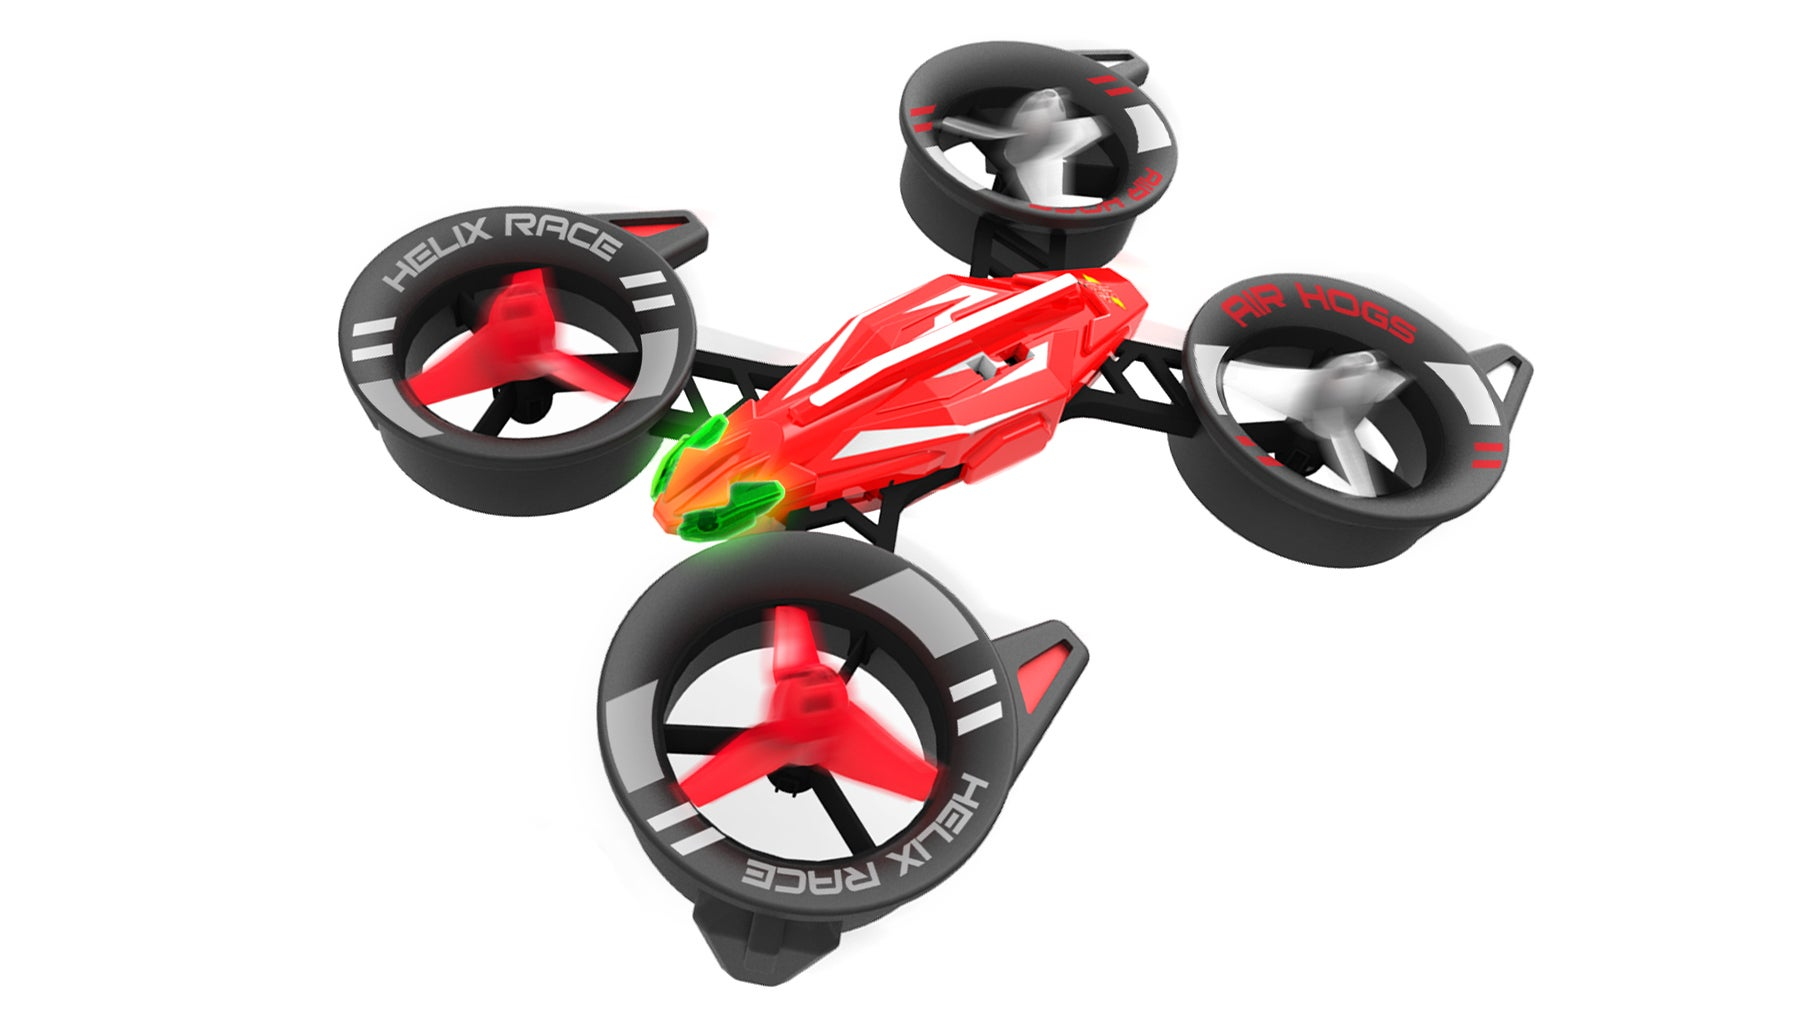 Air Hogs Tweaked the Helix to Be a Cheap Way to Get into Drone Racing